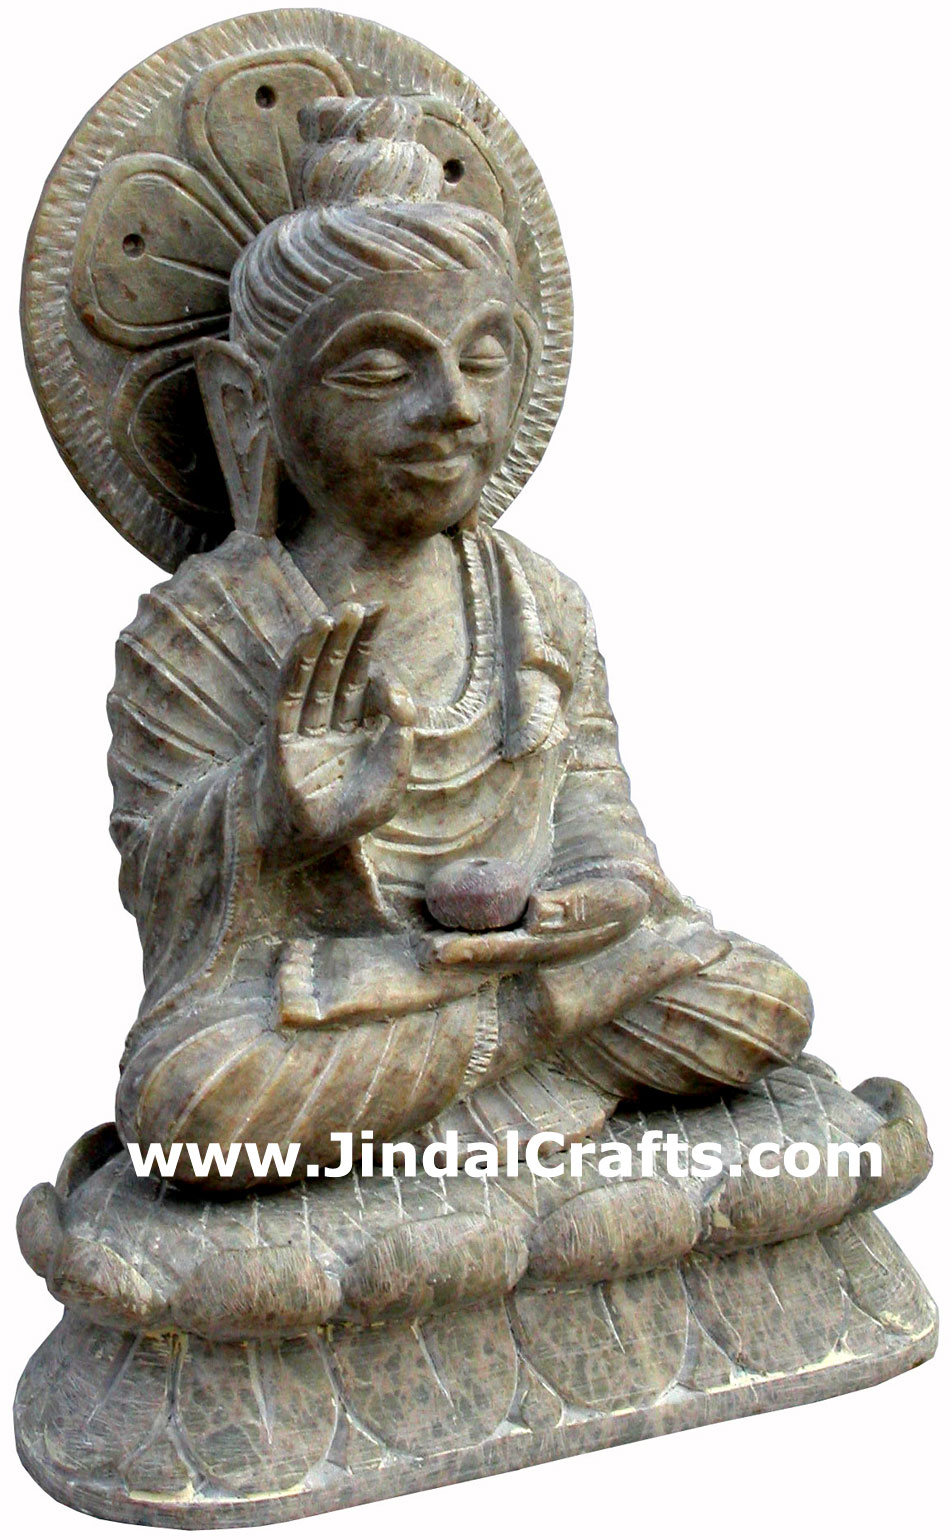 Lord Buddha Hand Carved Indian Art Craft Handicrafts Home